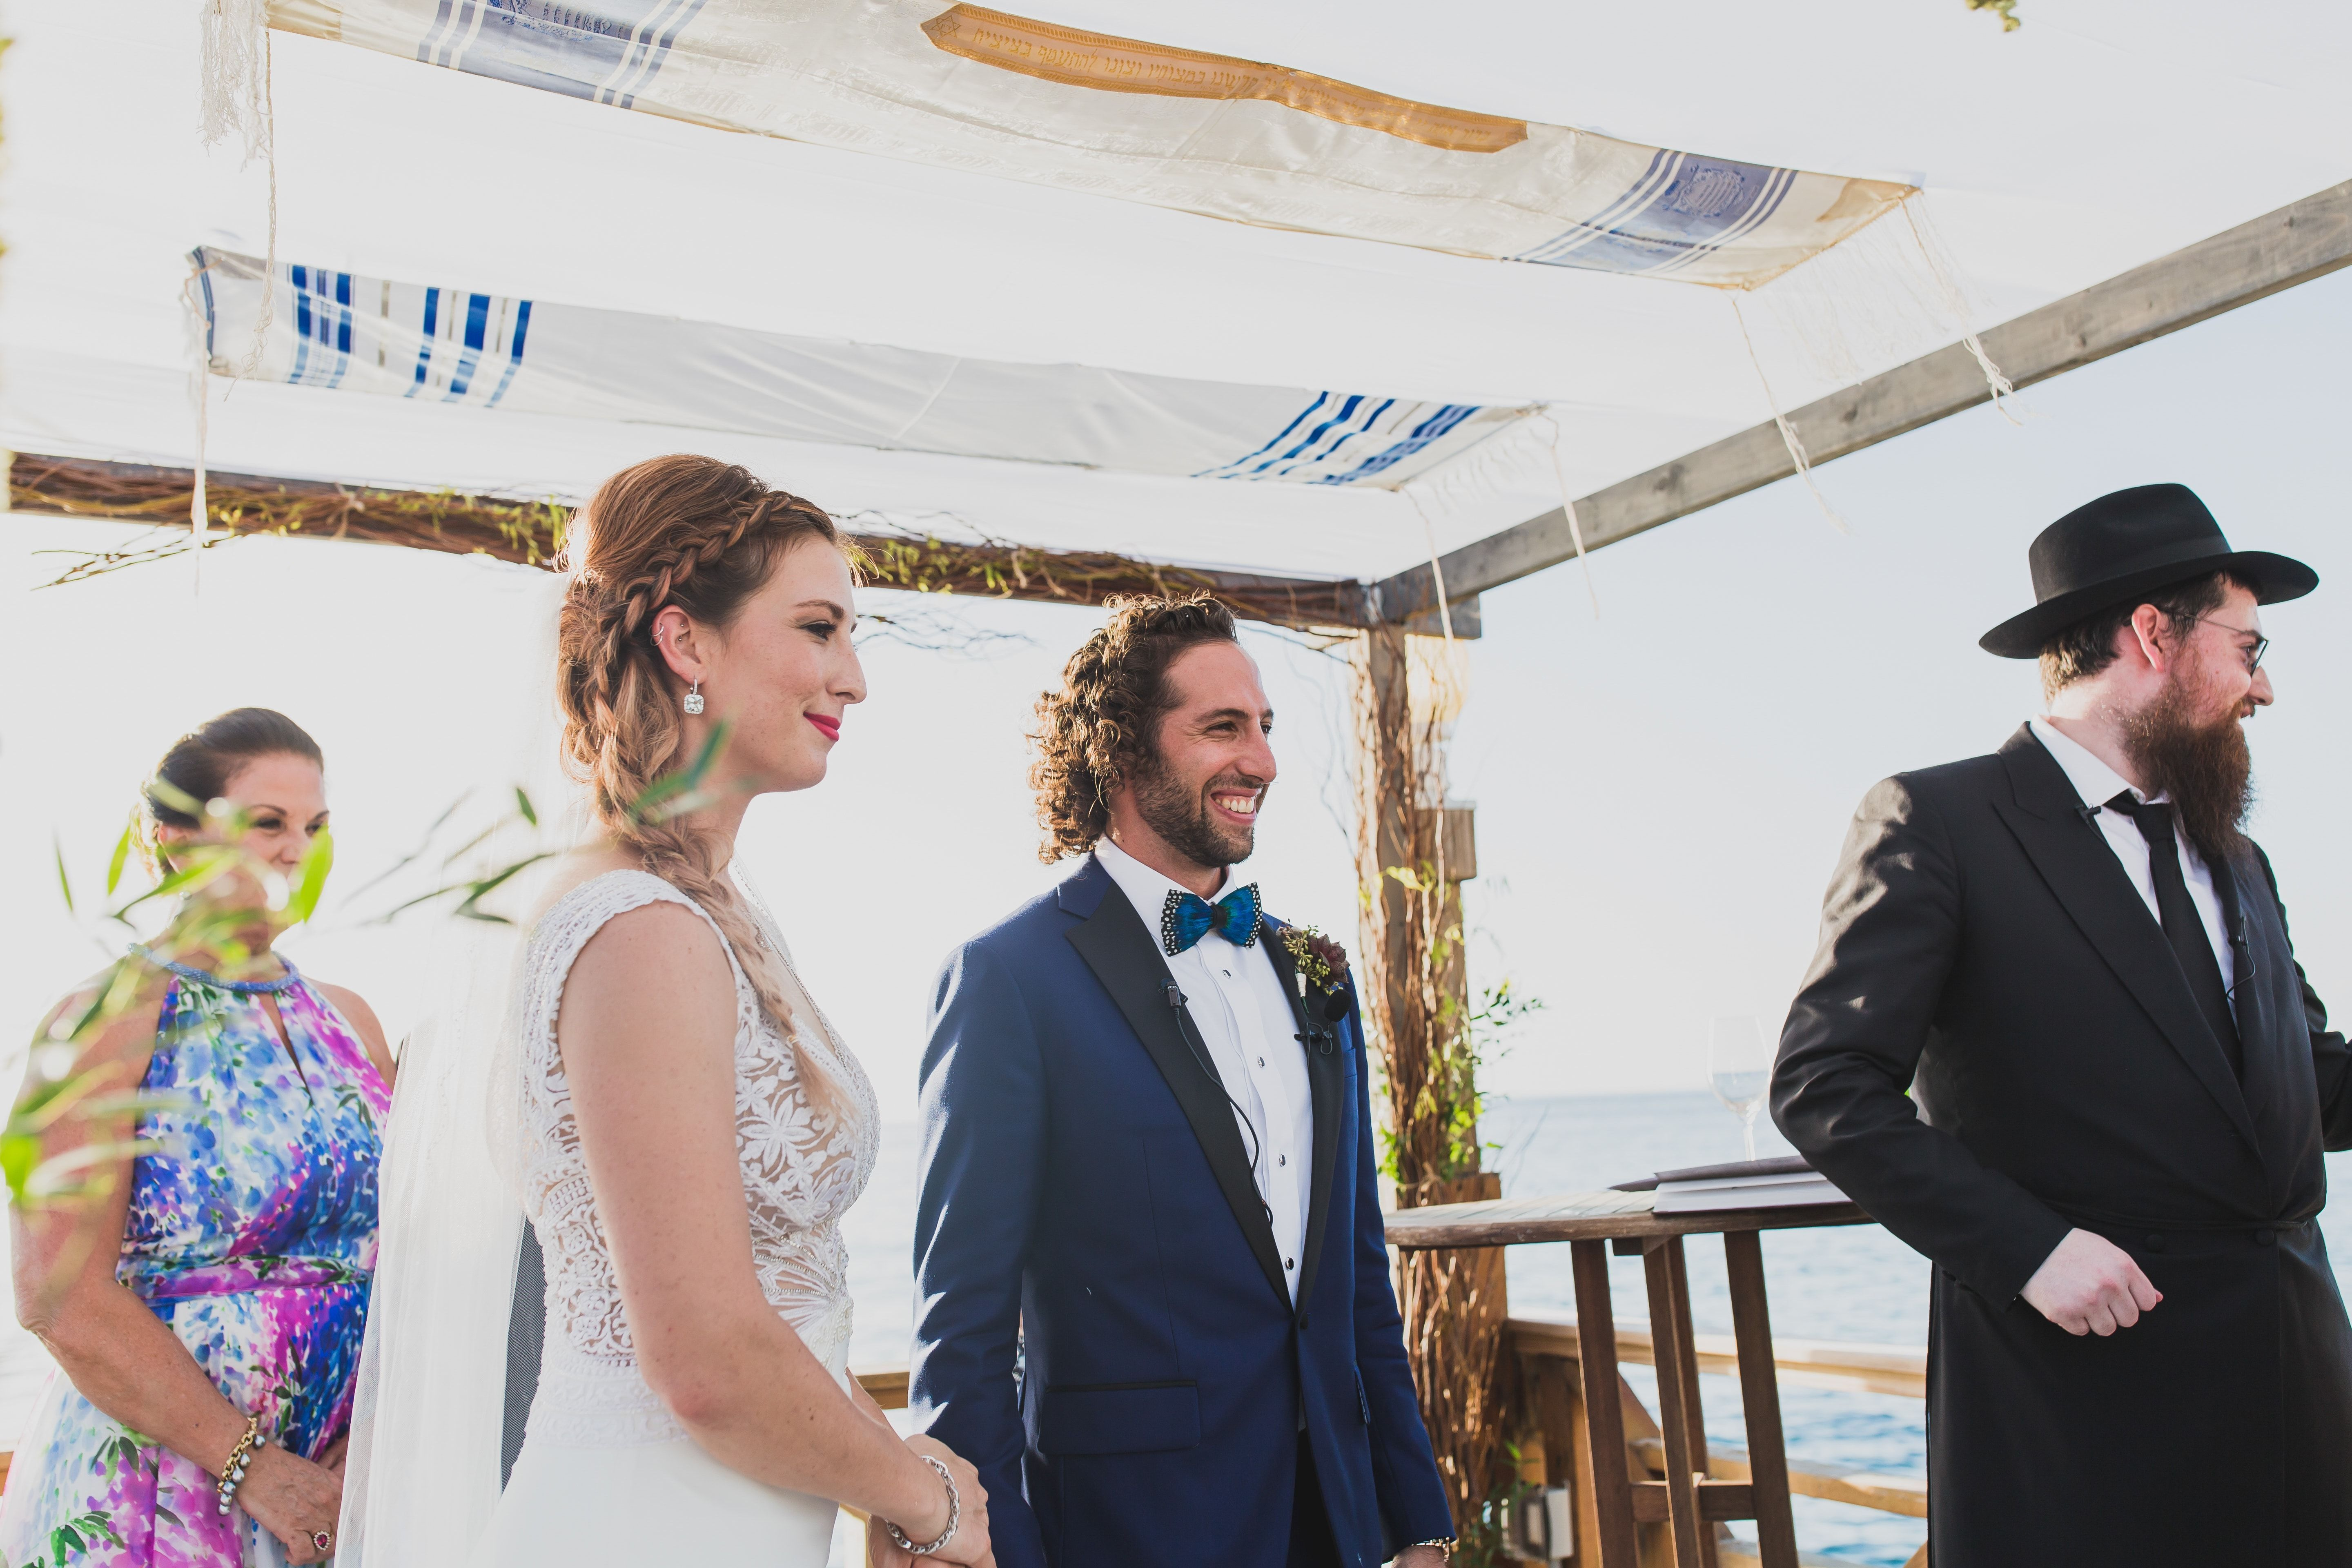 An Old Hollywood Style For This Cayman Islands Destination Wedding ...